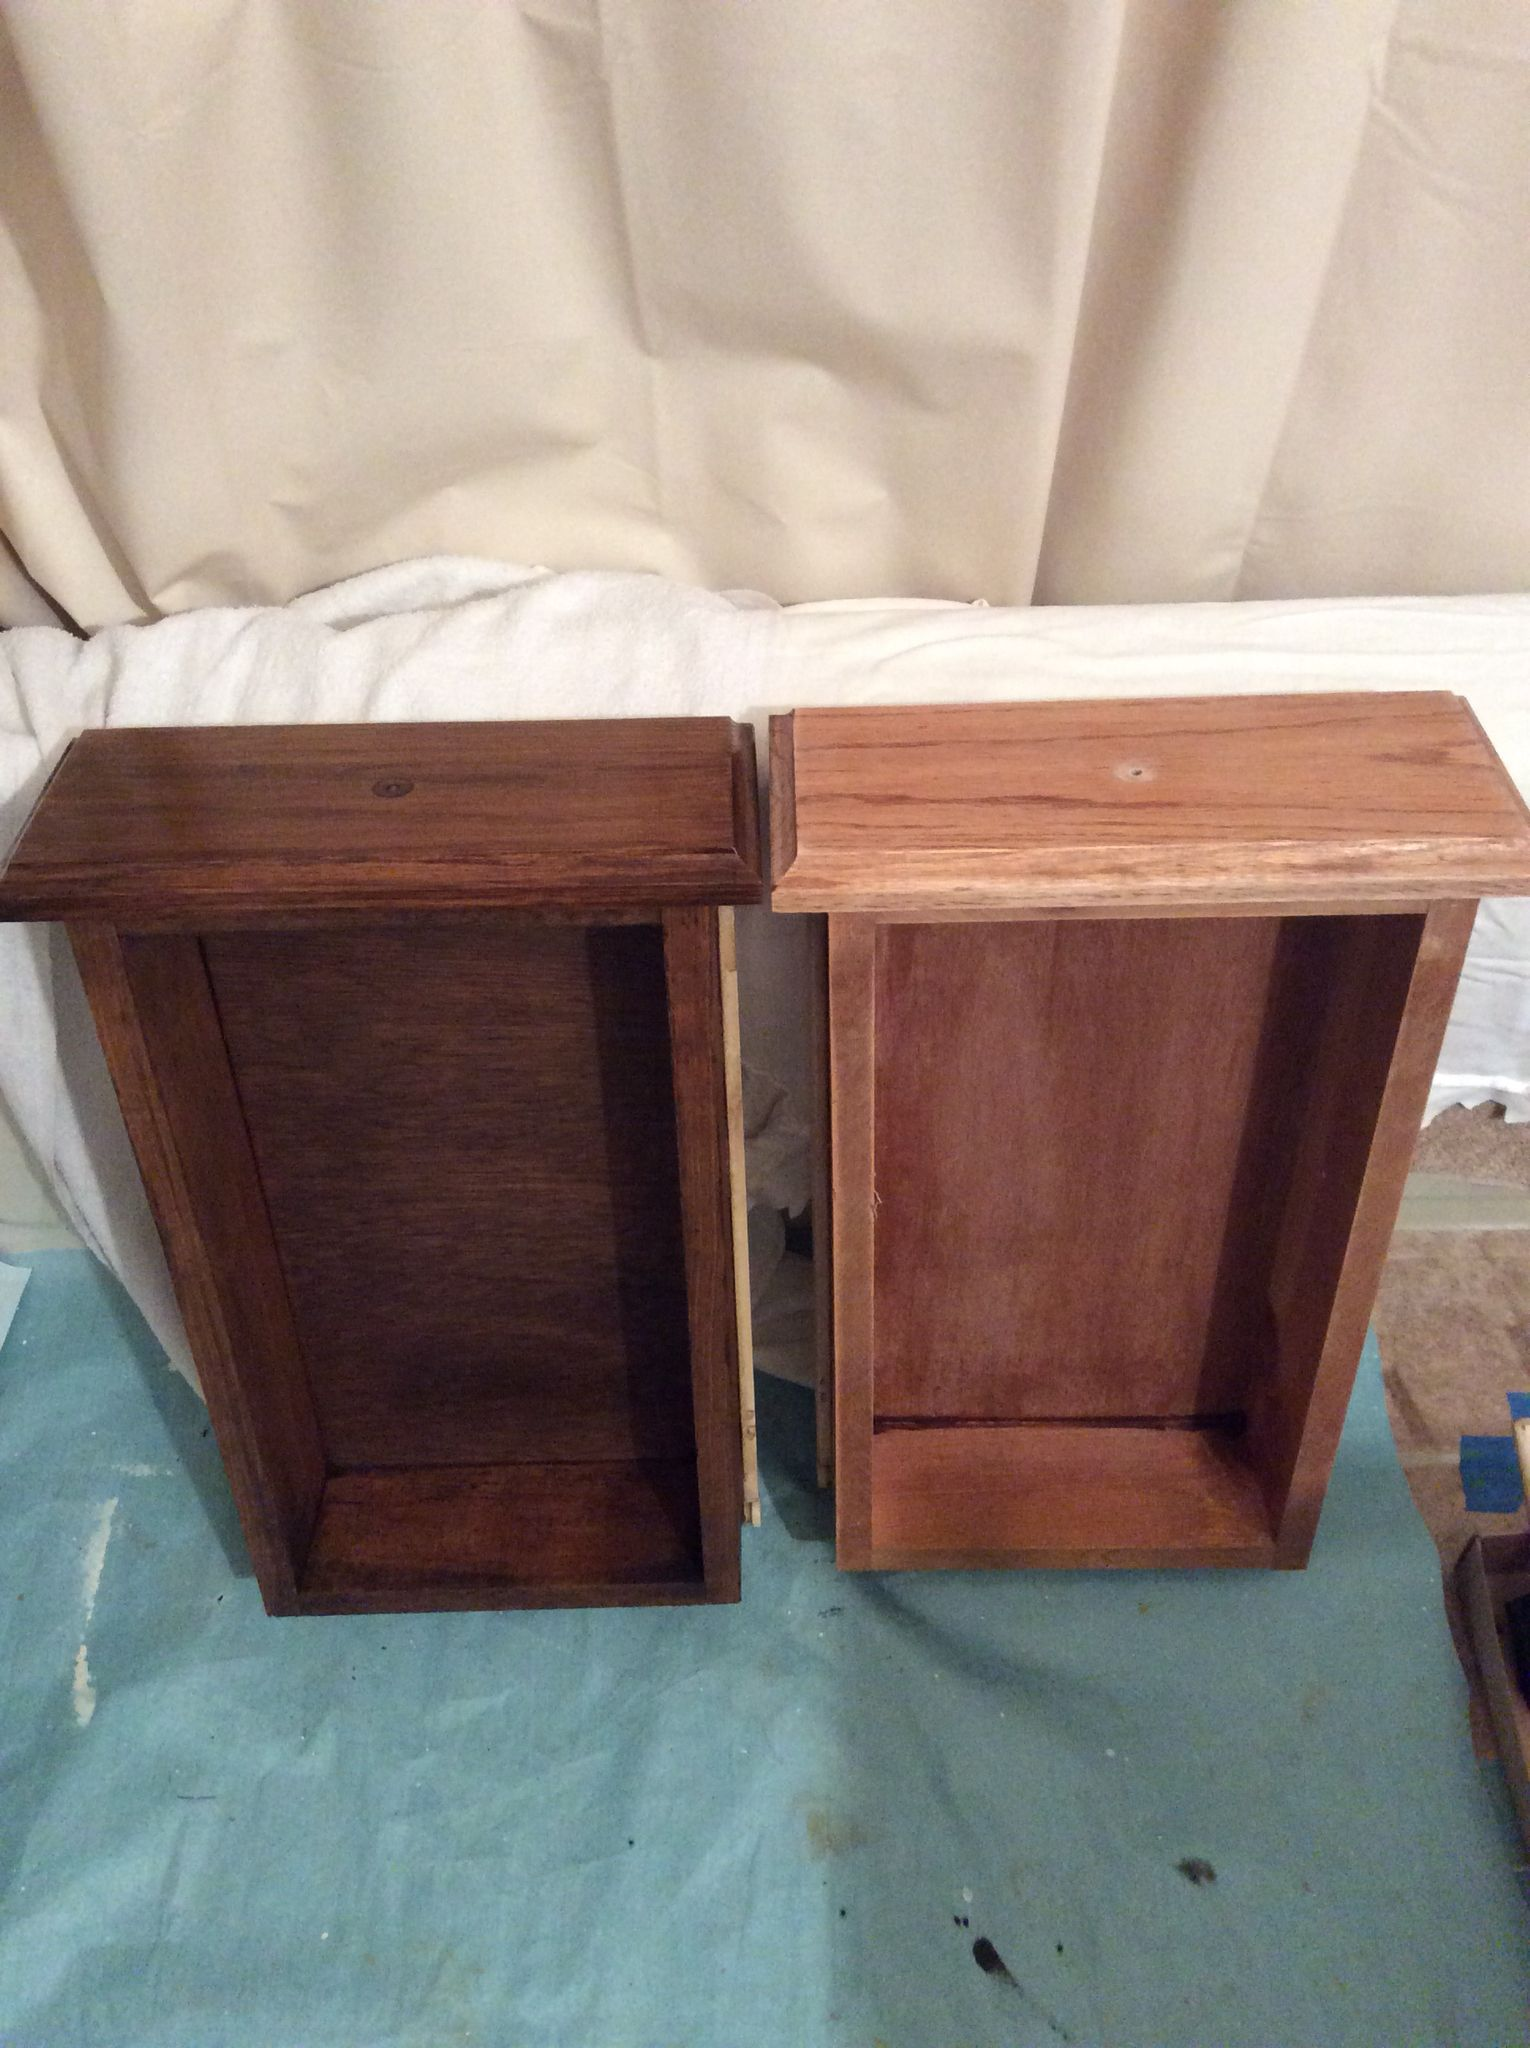 Updated dark walnut stain on left and old golden oak on right